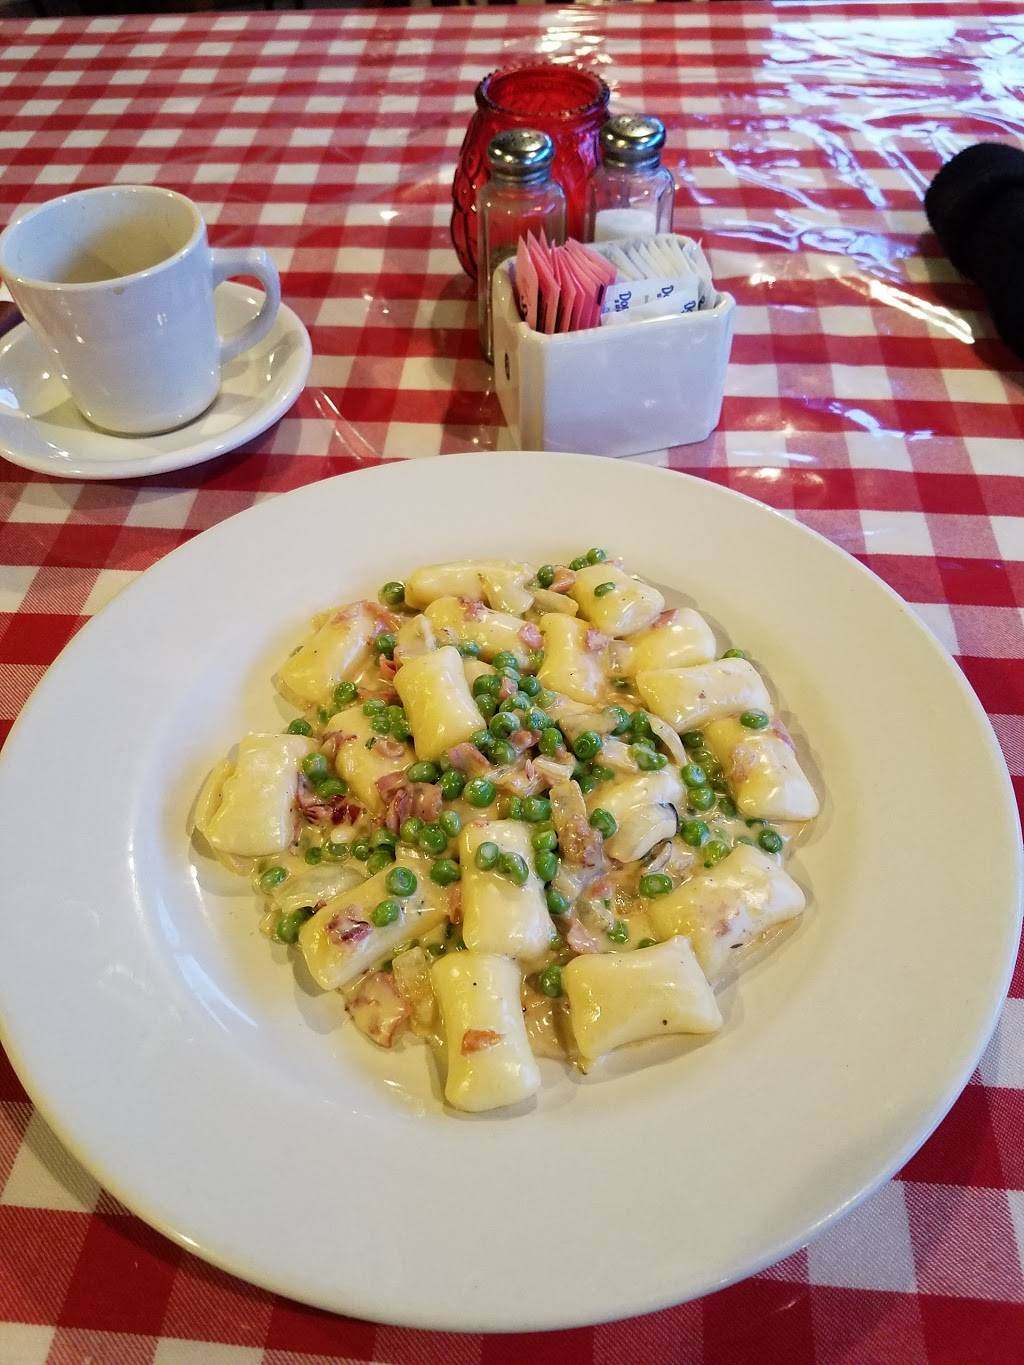 Dolce Italian Caffe & Bakery   meal takeaway   4204 N Arlington Heights Rd, Arlington Heights, IL 60004, USA   8478730813 OR +1 847-873-0813